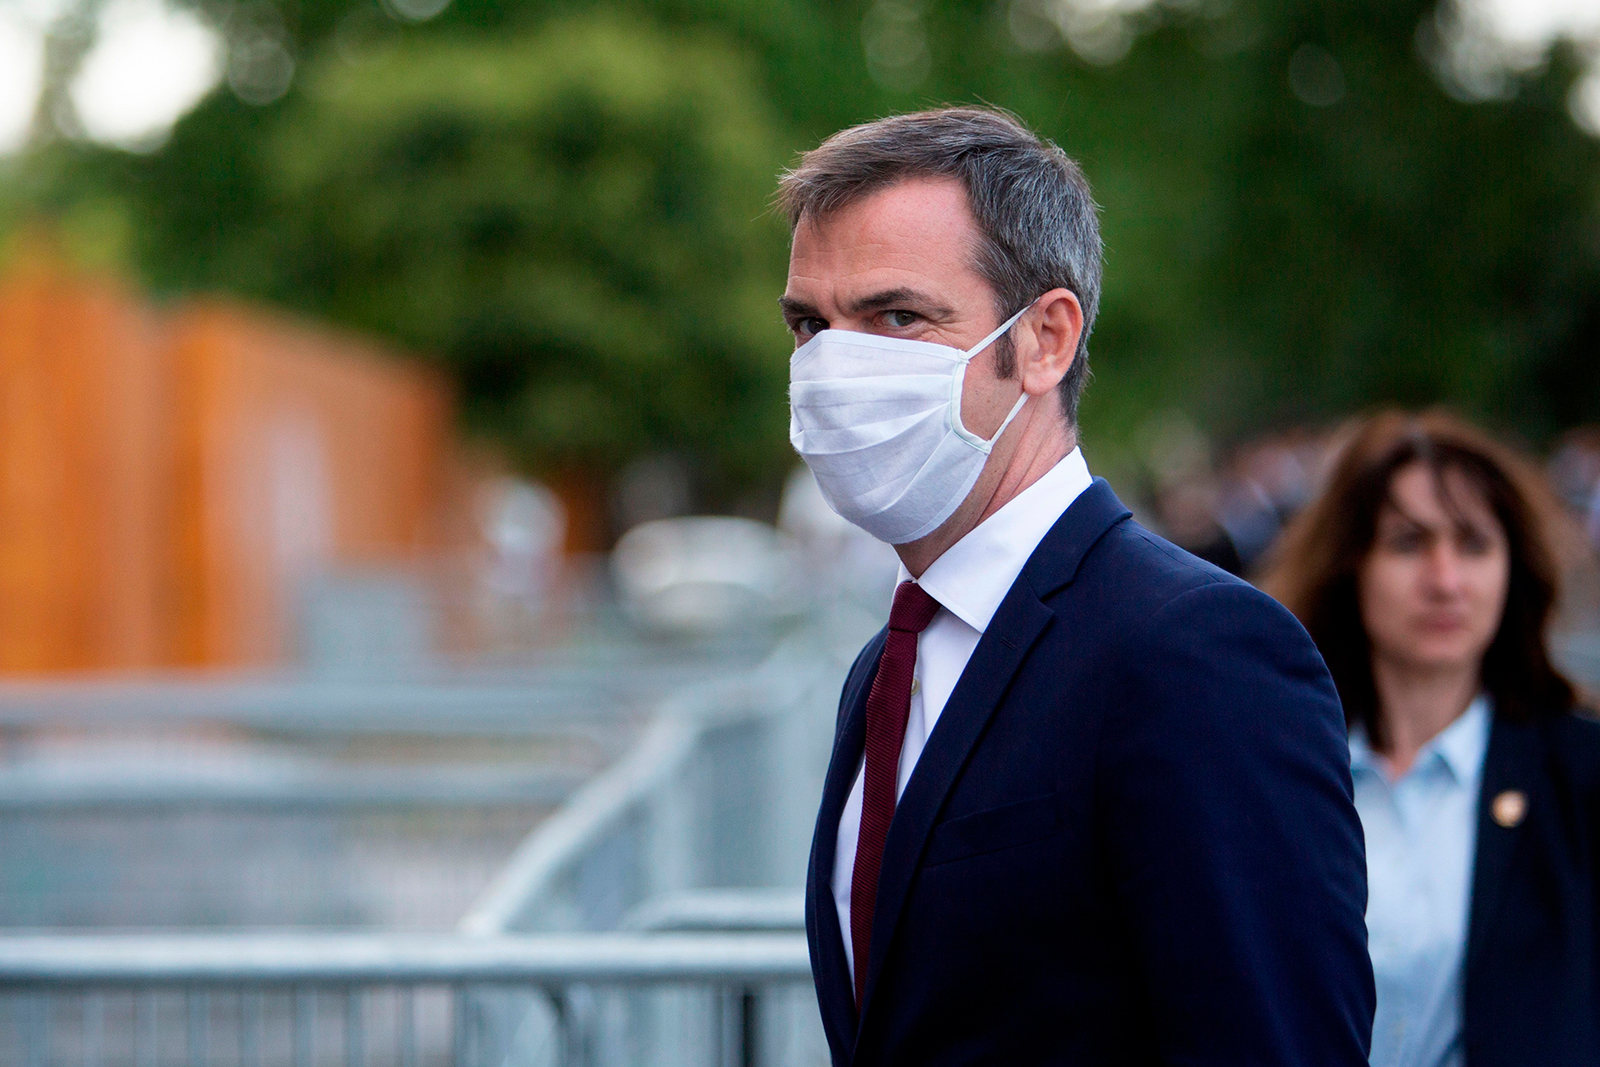 French Health Minister Olivier Veran arrives at the Grand Palais prior to a reception gathering 800 medical staff that helped during the novel coronavirus crisis in Paris, on July 13.